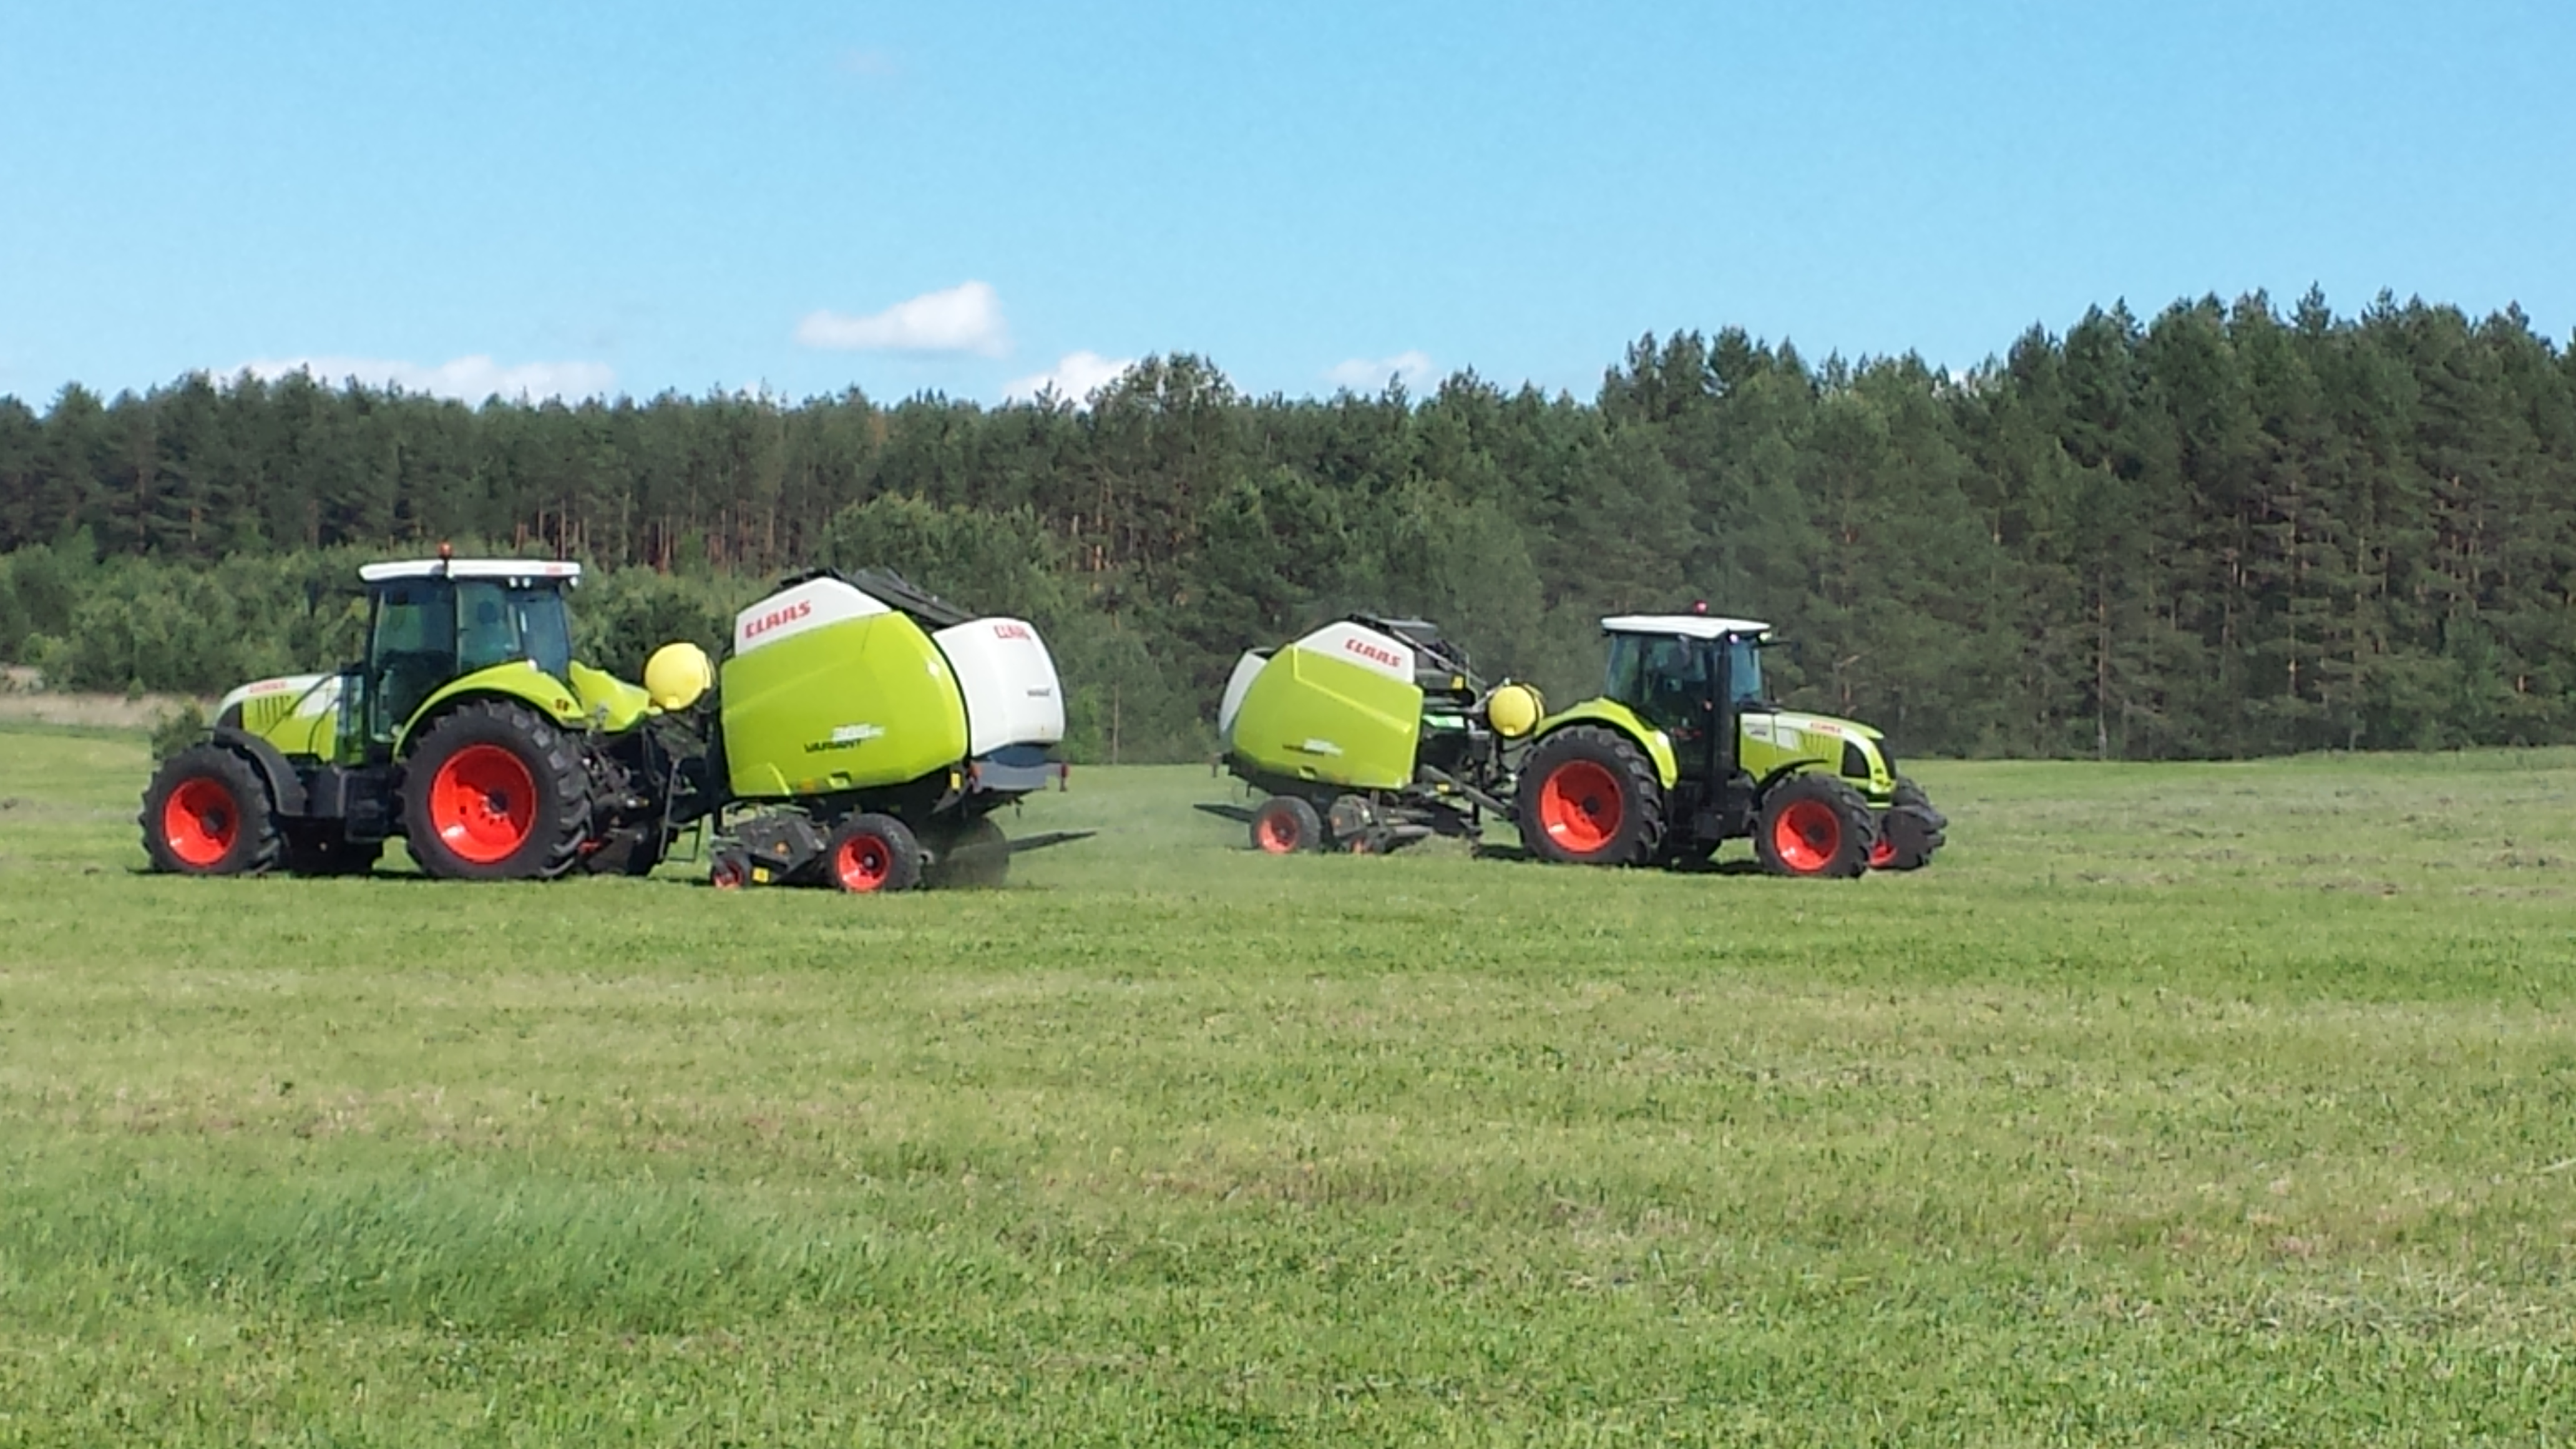 Claas round balers operating